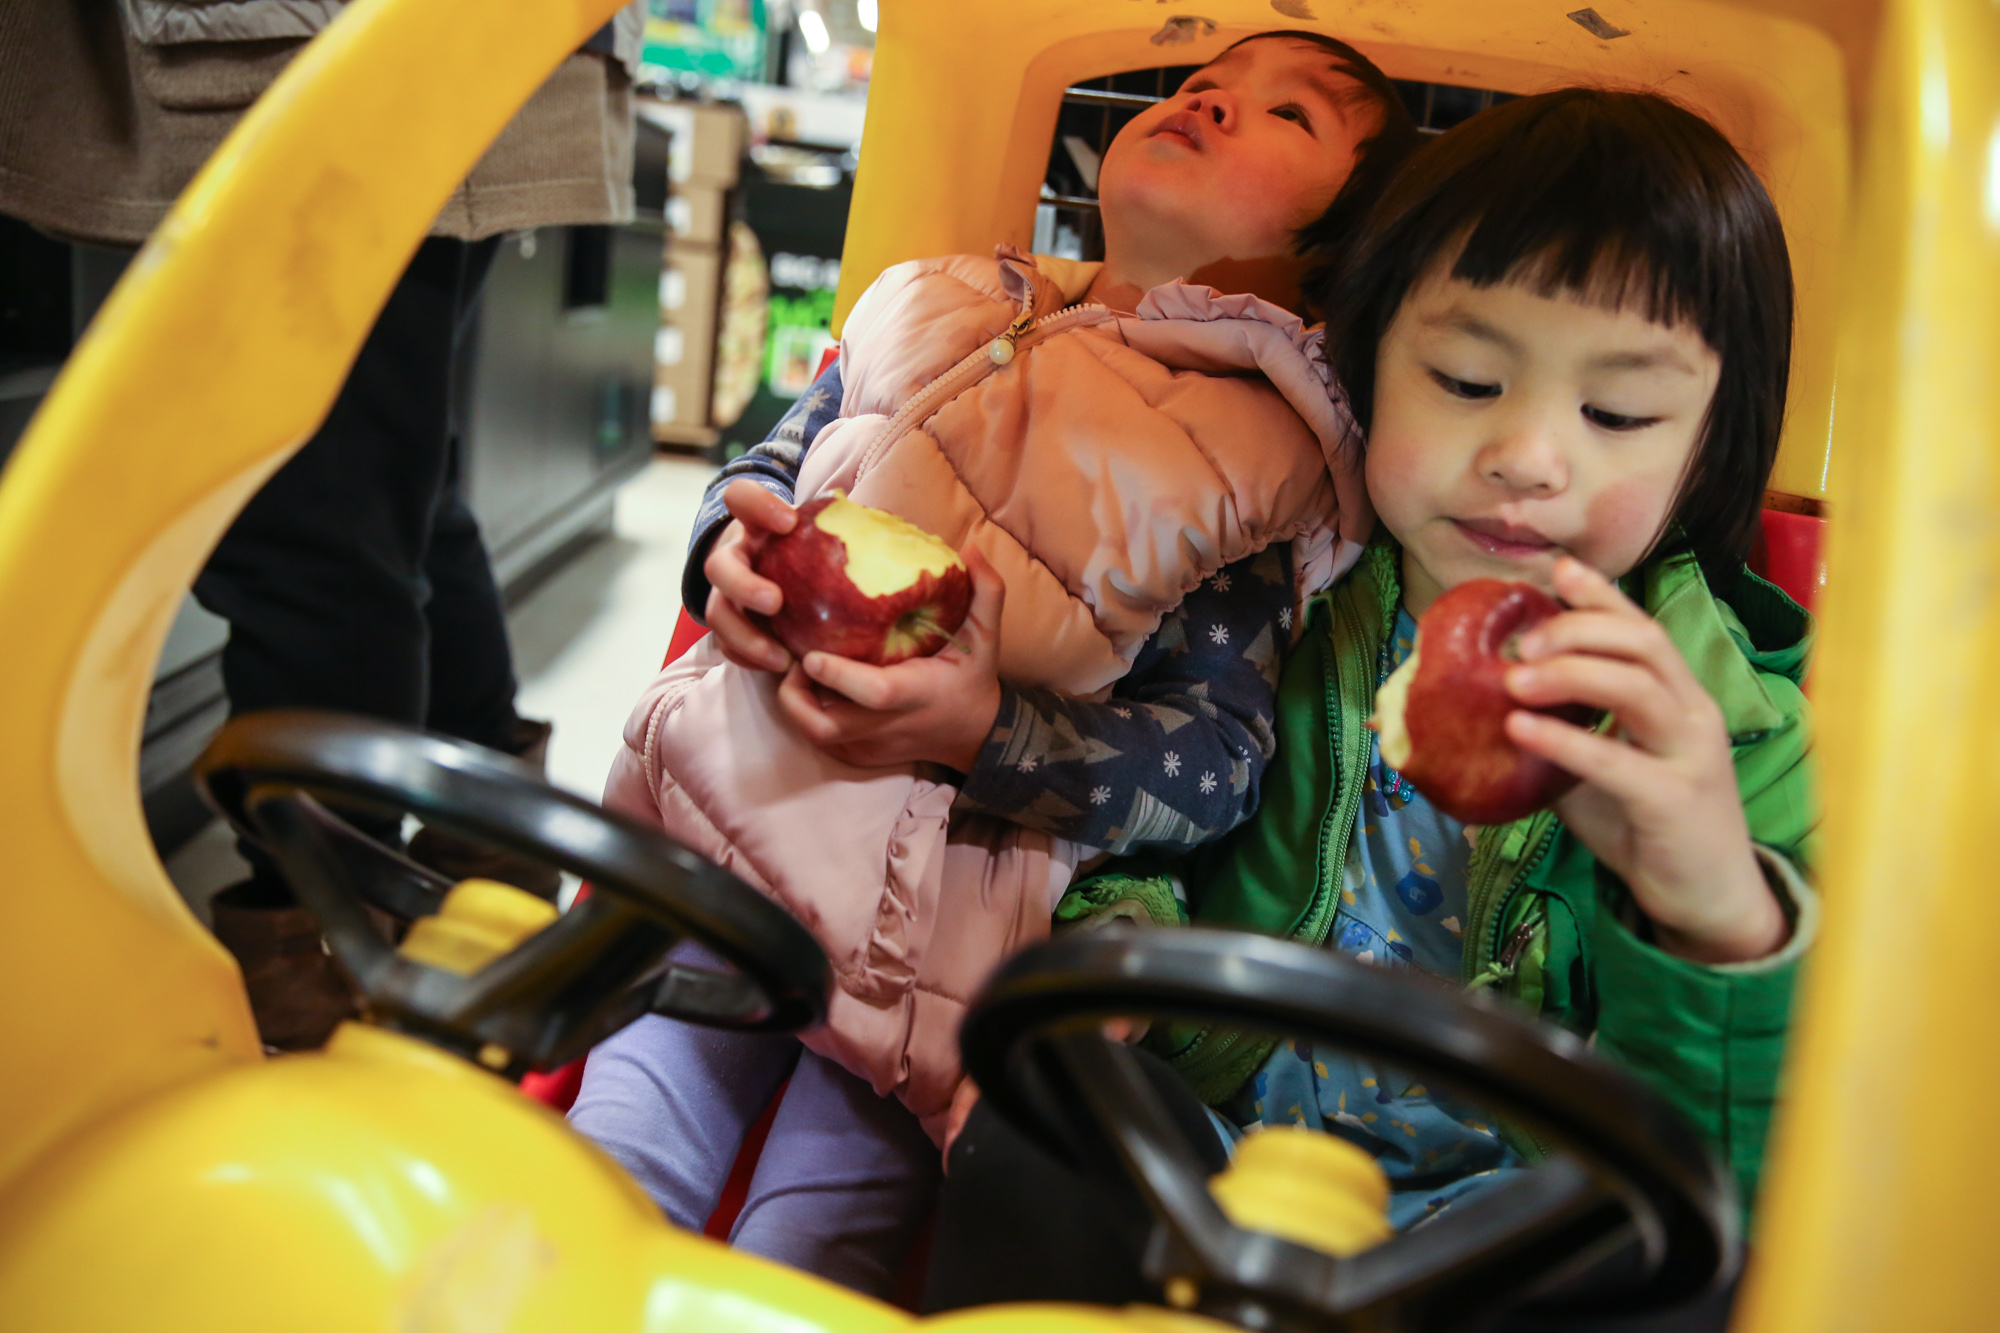 Two girls sitting in yellow toy car with steering wheels while eating red apples